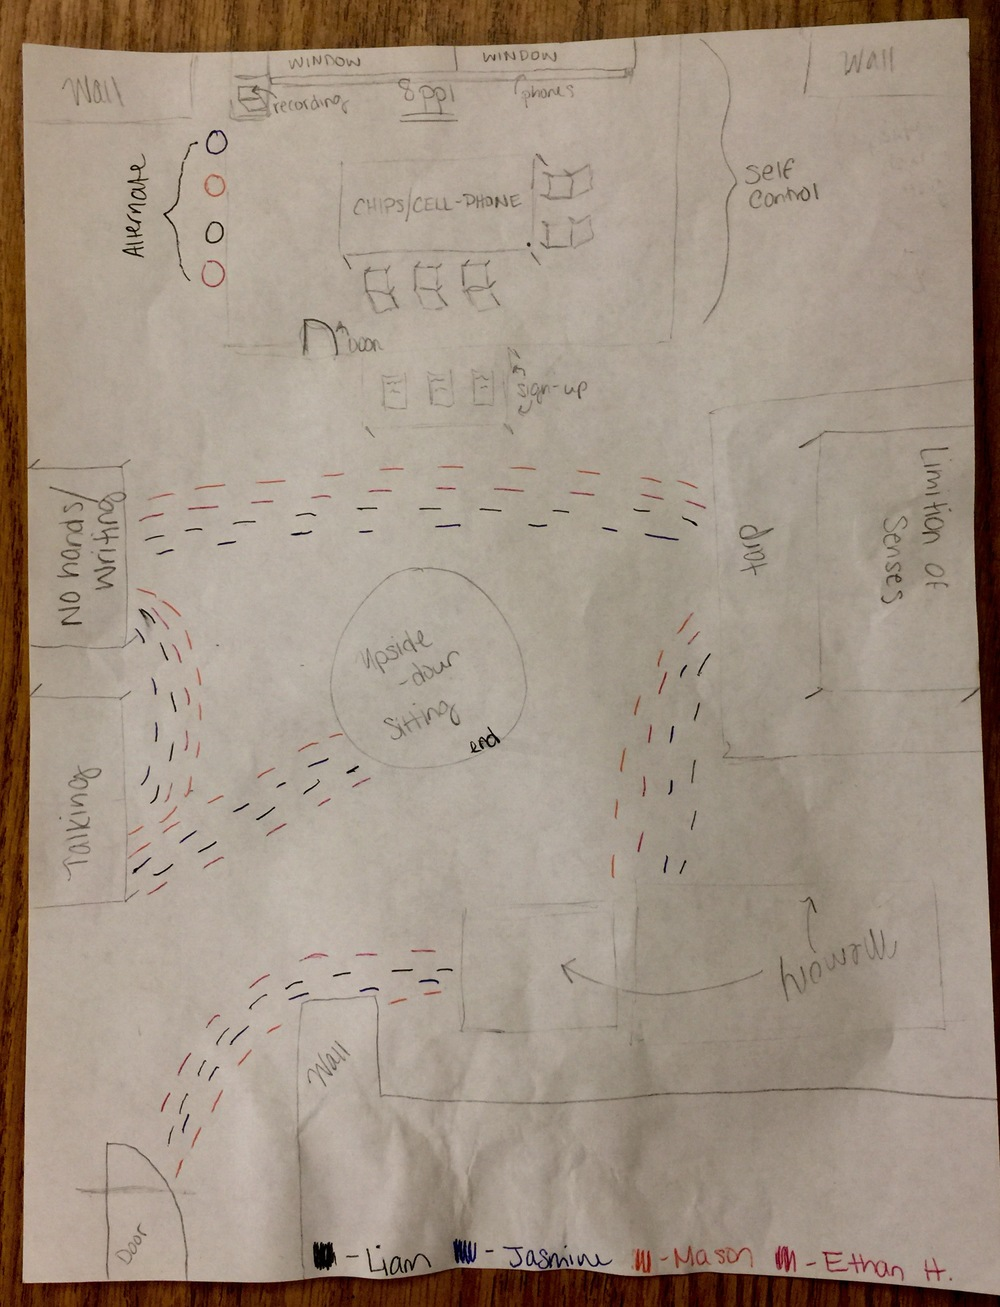 one of the the students made this beautiful drawing mapping out their project presentation.